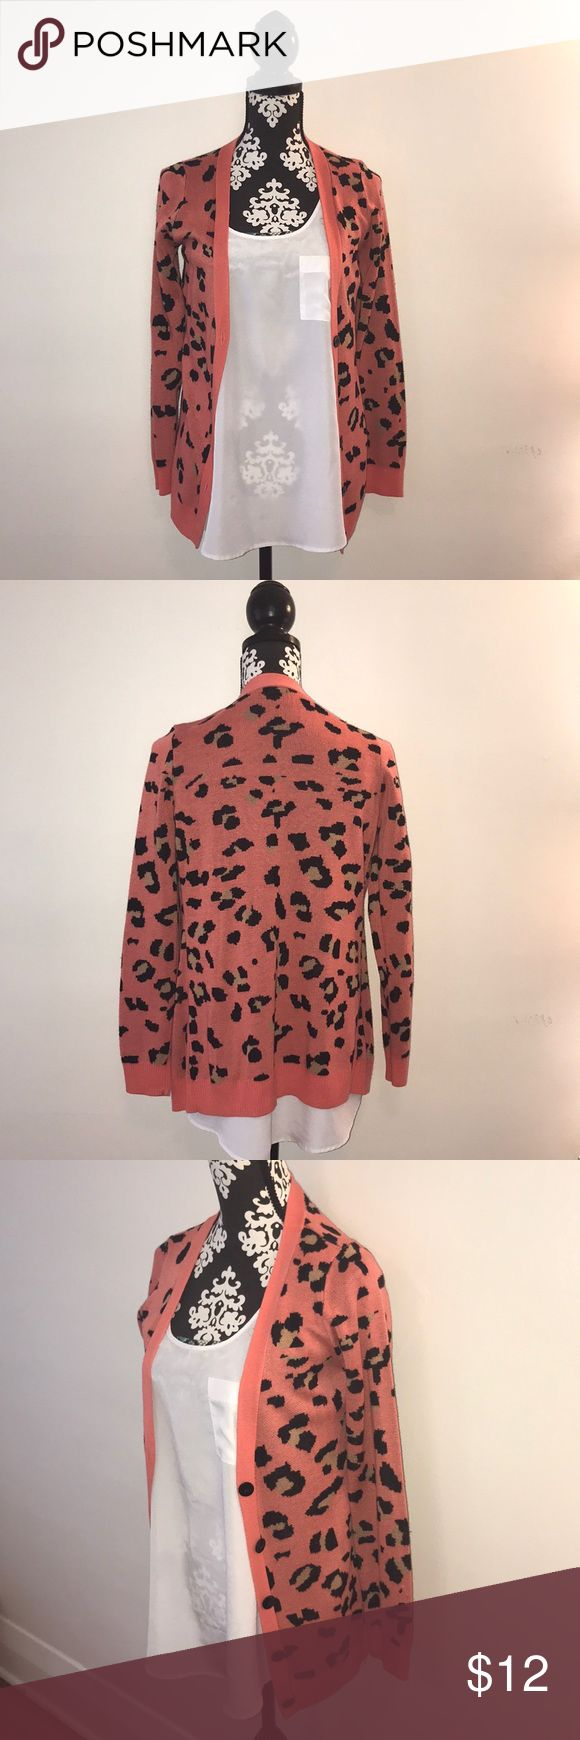 Pink Cheetah Print Cardigan Long Cardigan with very cute print. Super comfy and worn once Charlotte Russe Sweaters Cardigans